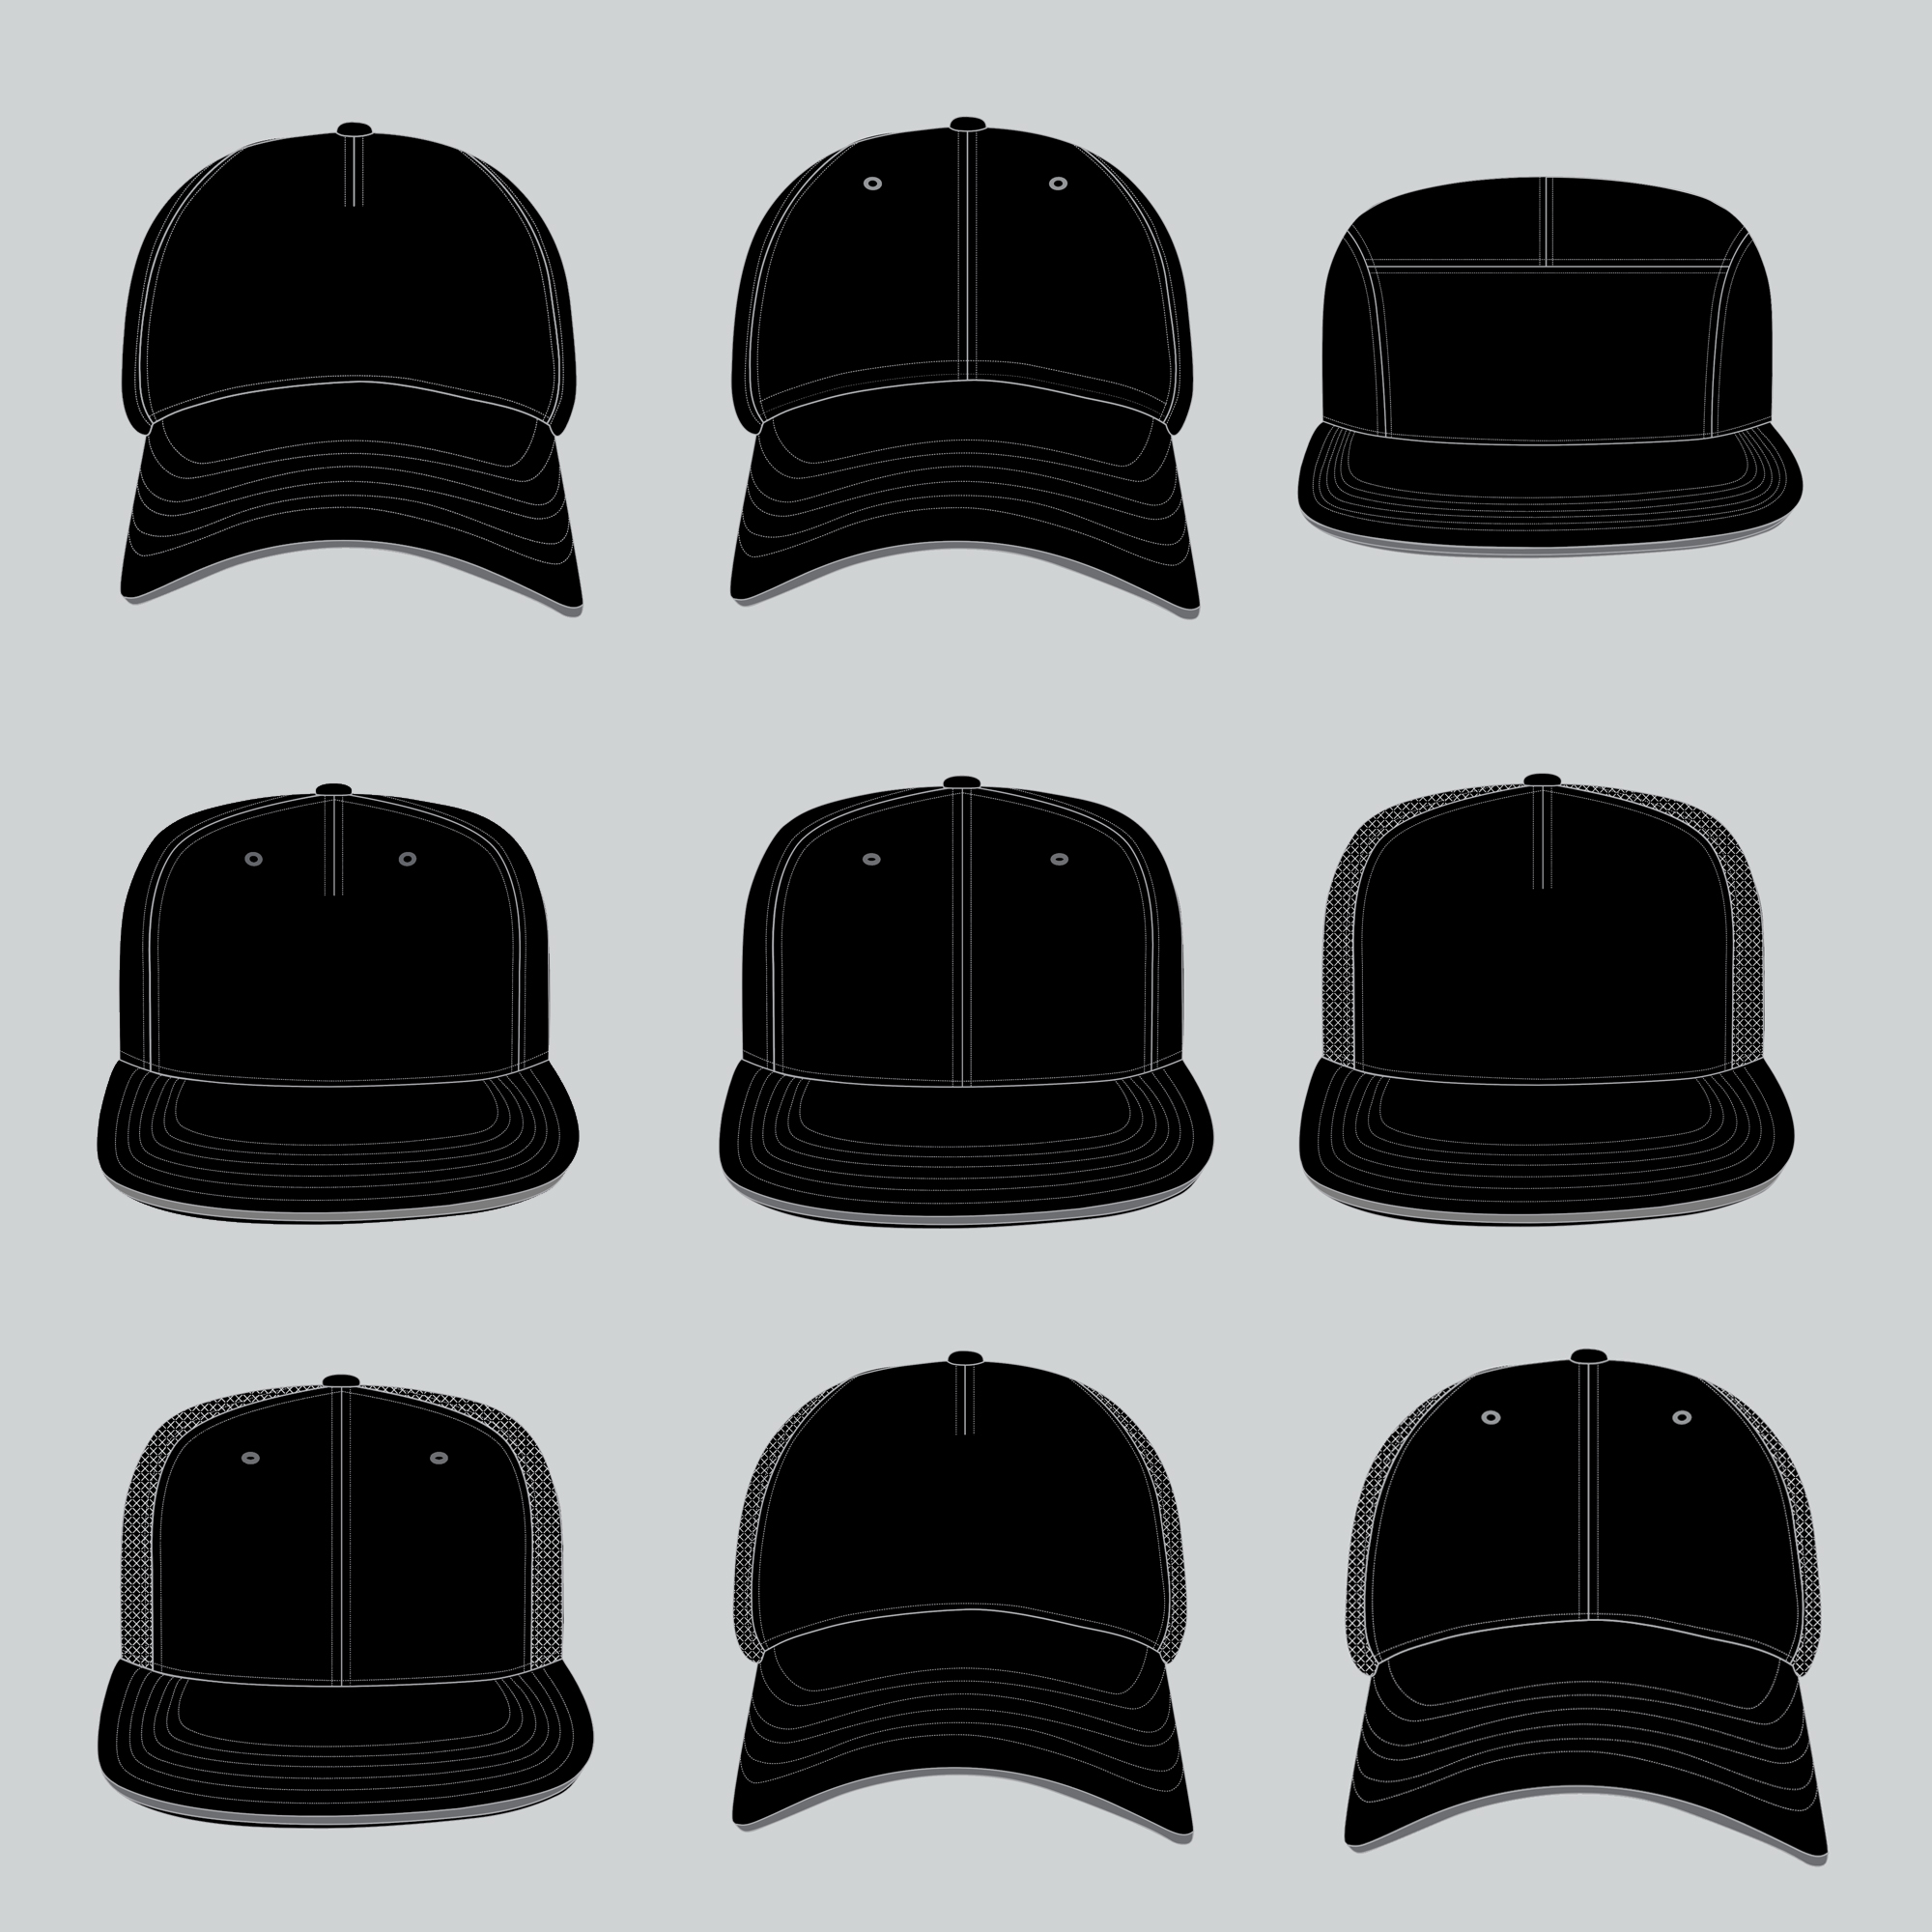 2. Choose your headwear style - Our Custom Private Label Service has 11 headwear styles for you to choose from. You can also download our headwear tech pack templates to assist your design process too. Check out our templates.